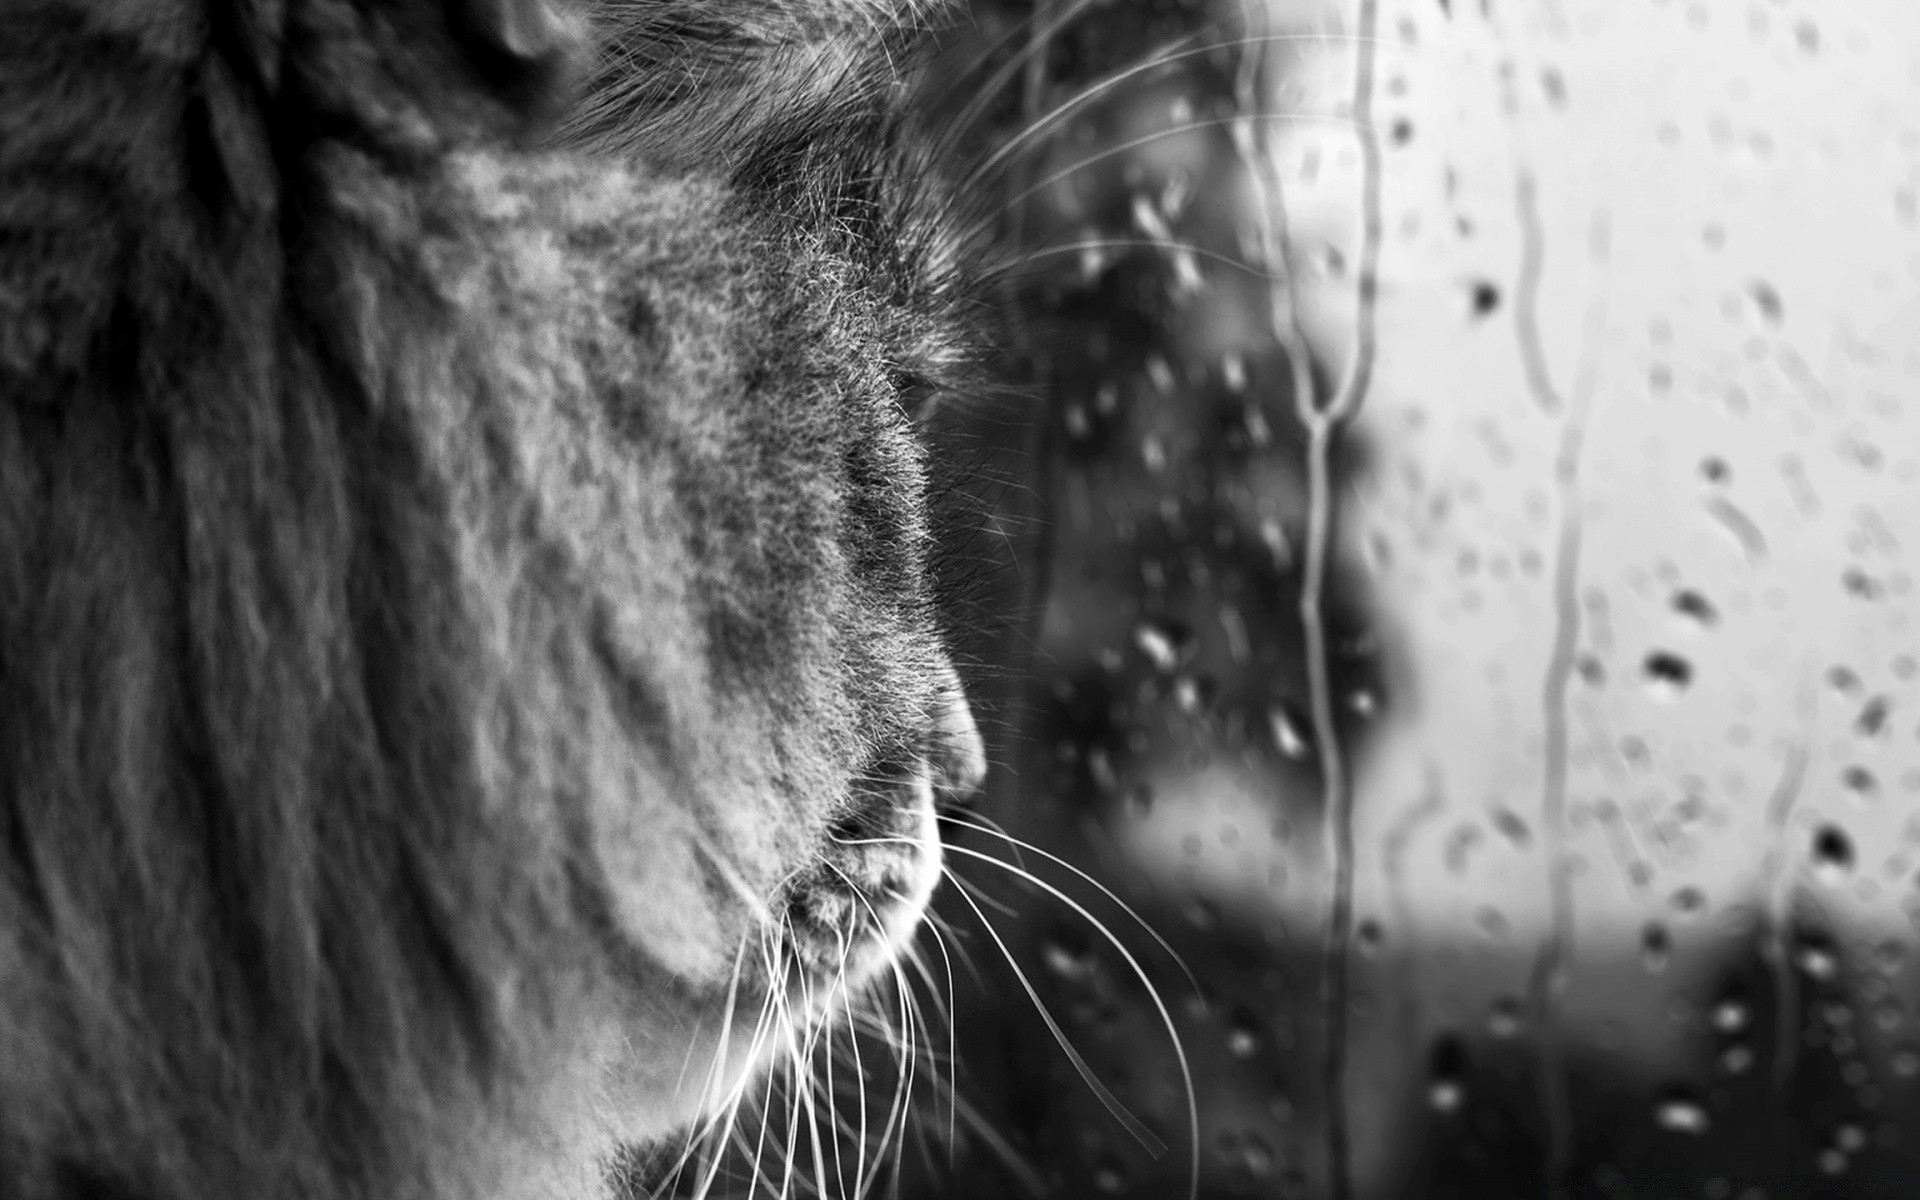 Rainy Day Bw Android Wallpapers